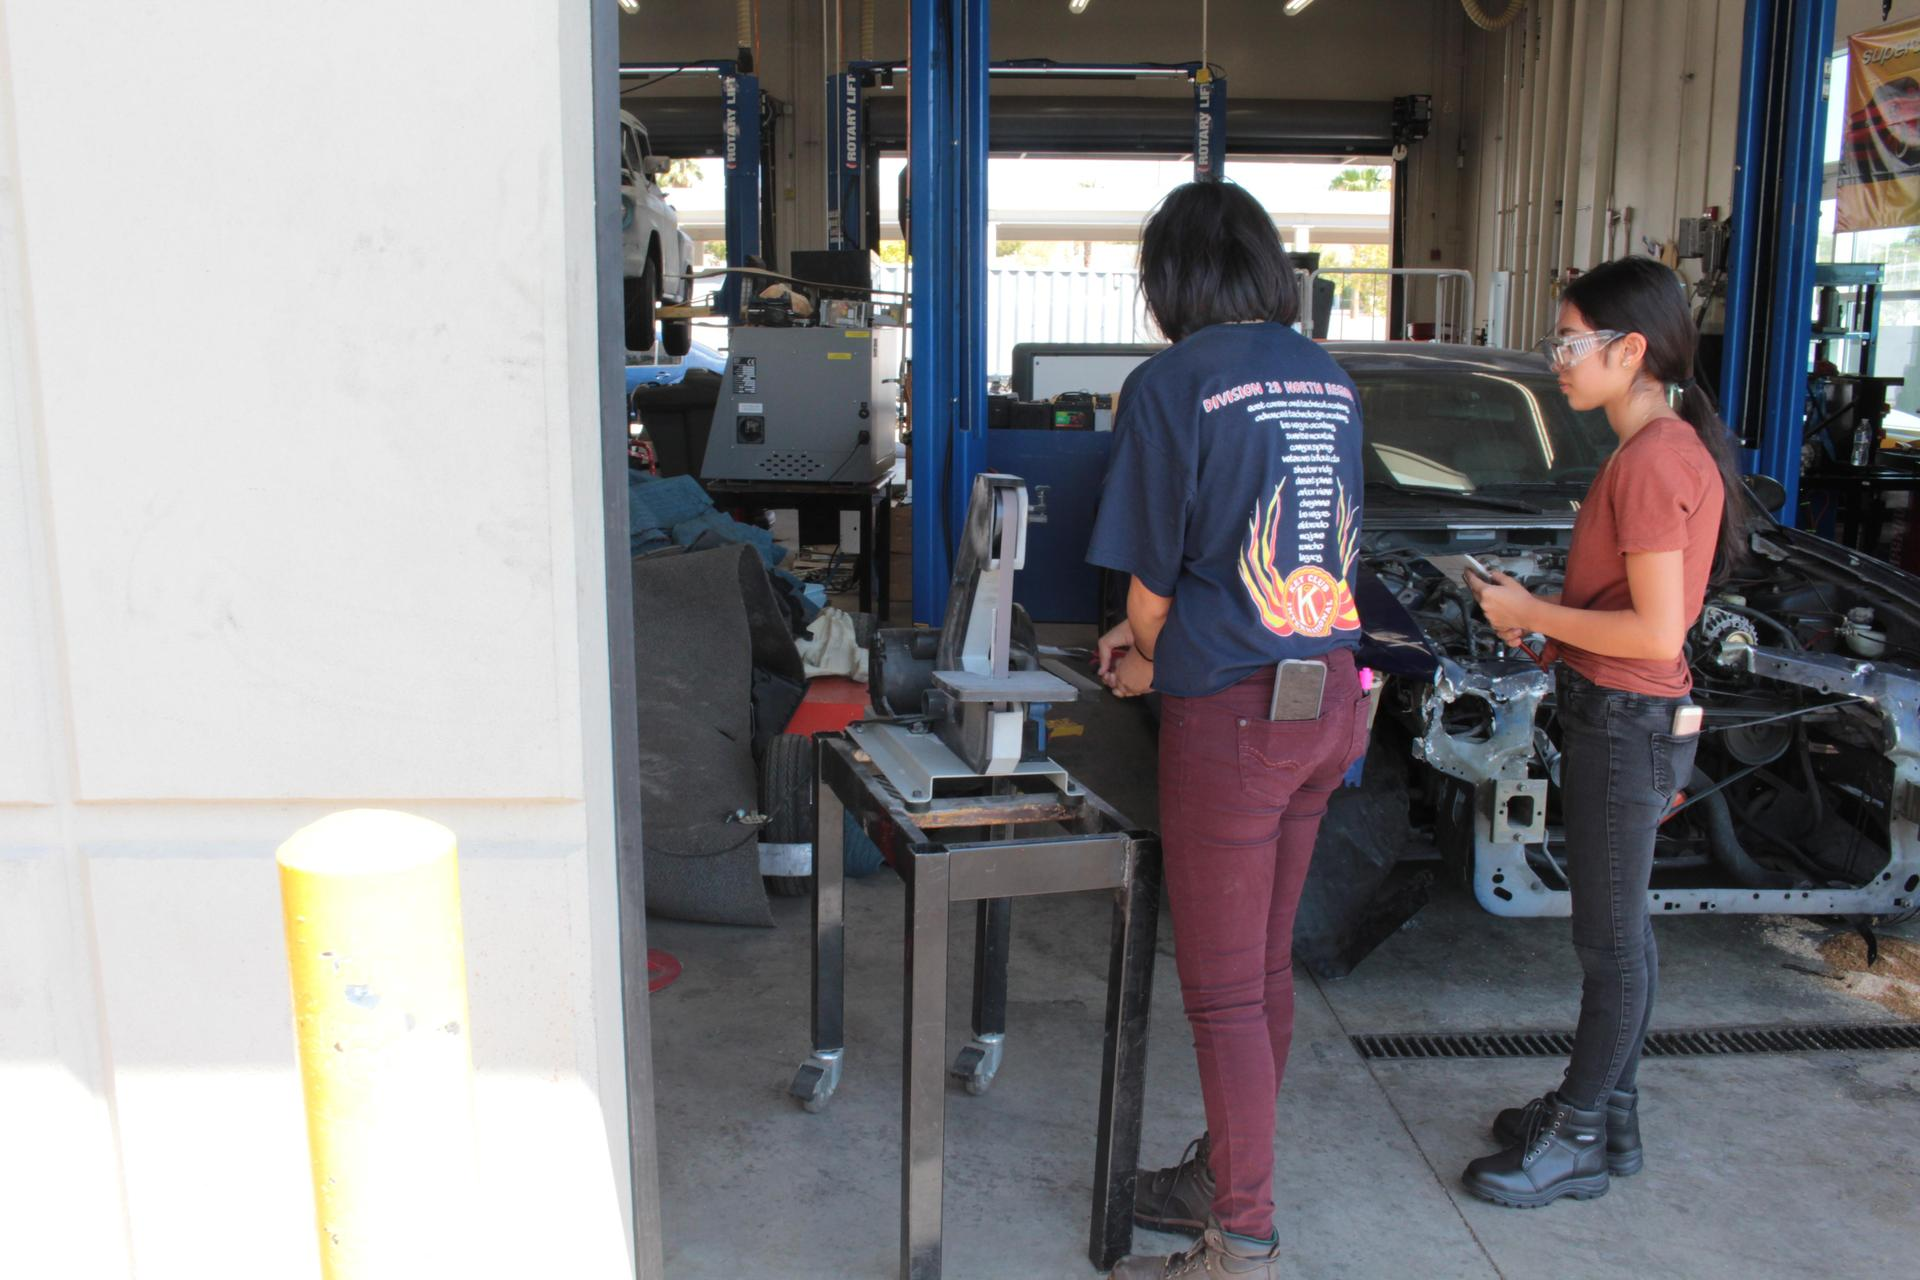 Two female students checking out a vehicle